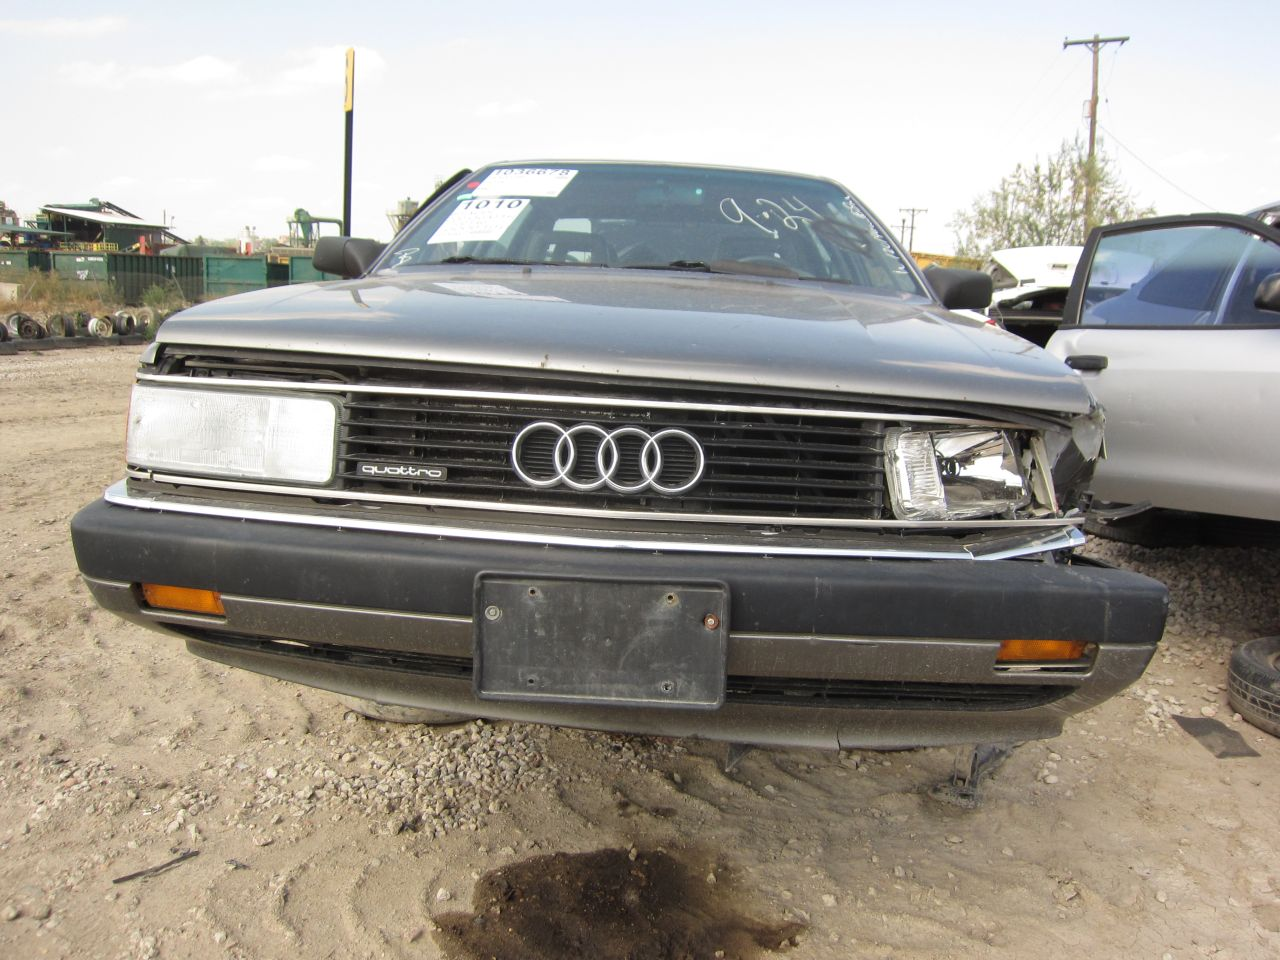 junkyard find 1989 audi 200 quattro turbo the truth. Black Bedroom Furniture Sets. Home Design Ideas